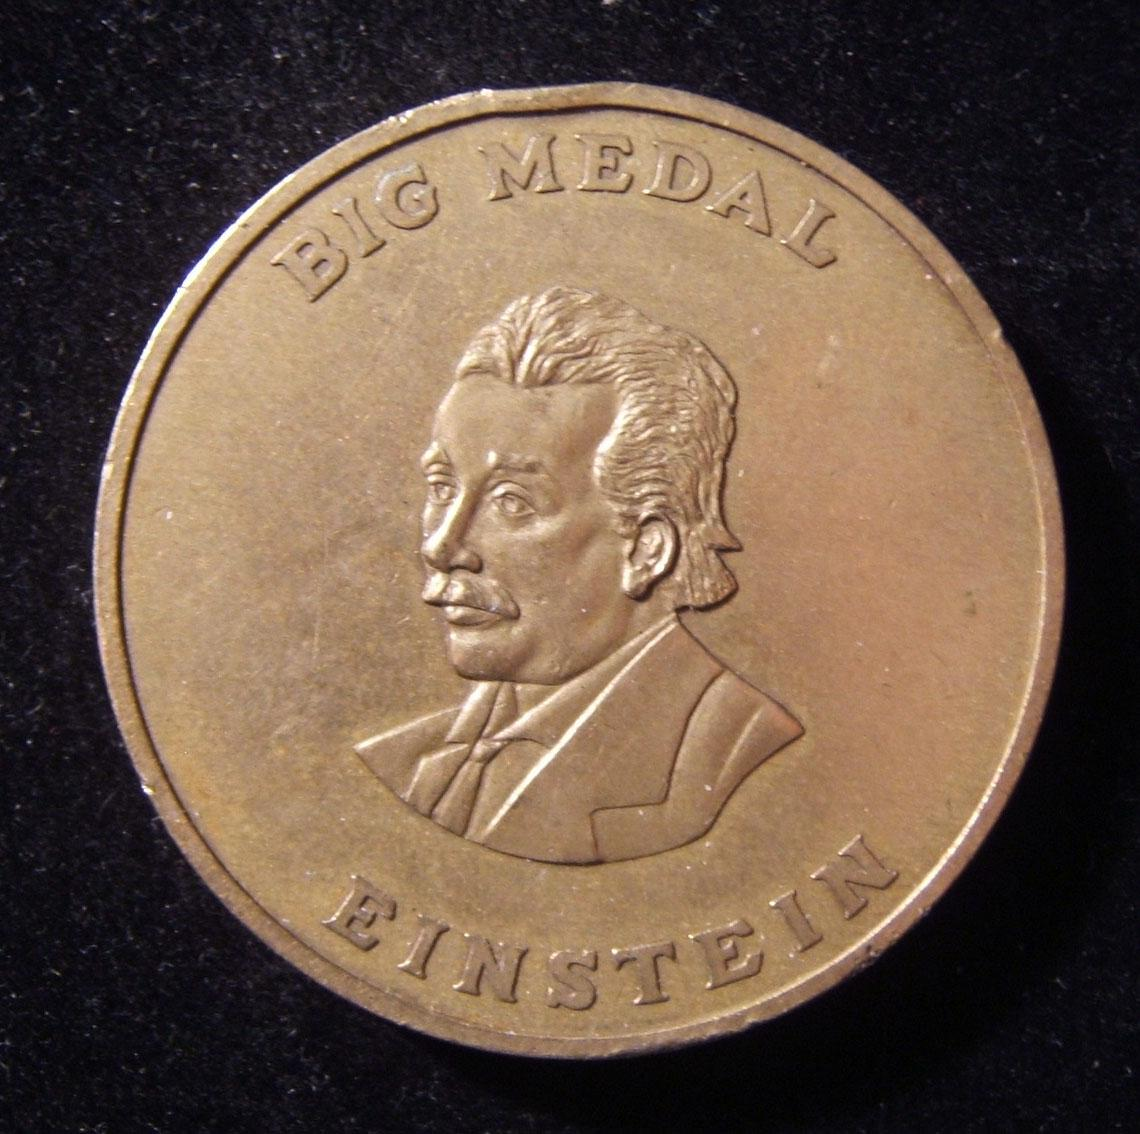 US: Int. Academy Sciences, Education, Industry & Arts 'Einstein' medal